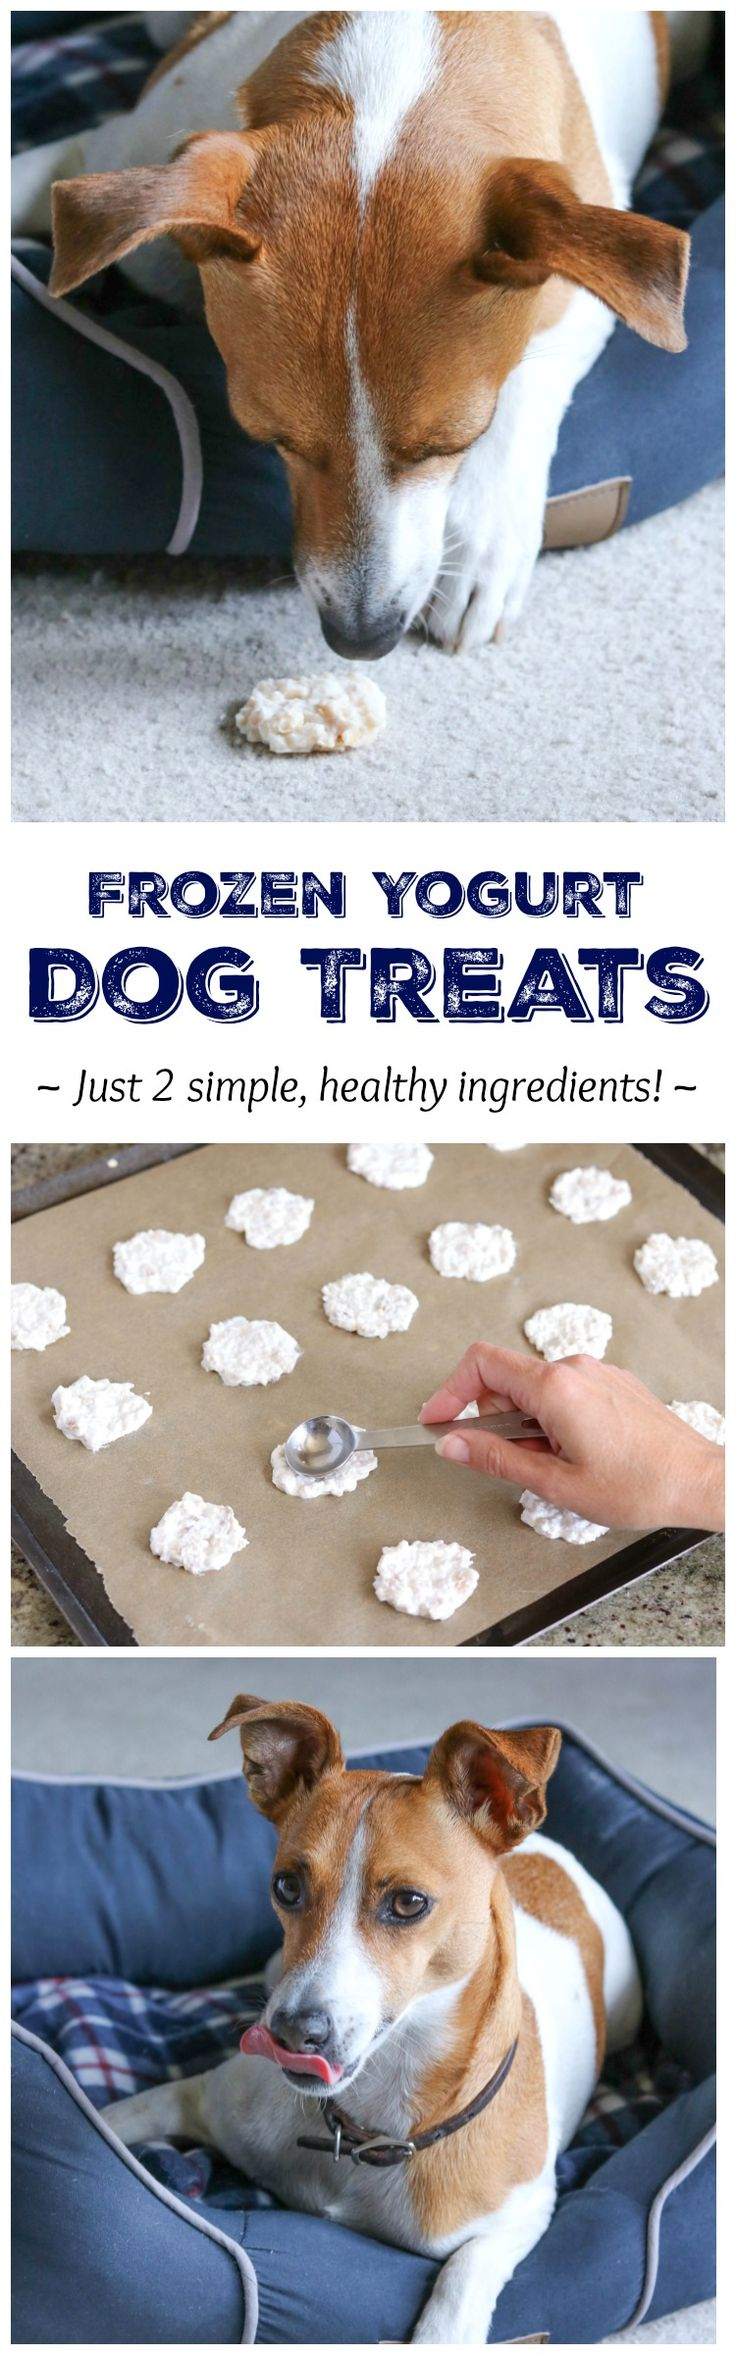 2-Ingredient Frozen Dog Treat Recipe (That Uses Up Leftover Chicken!)